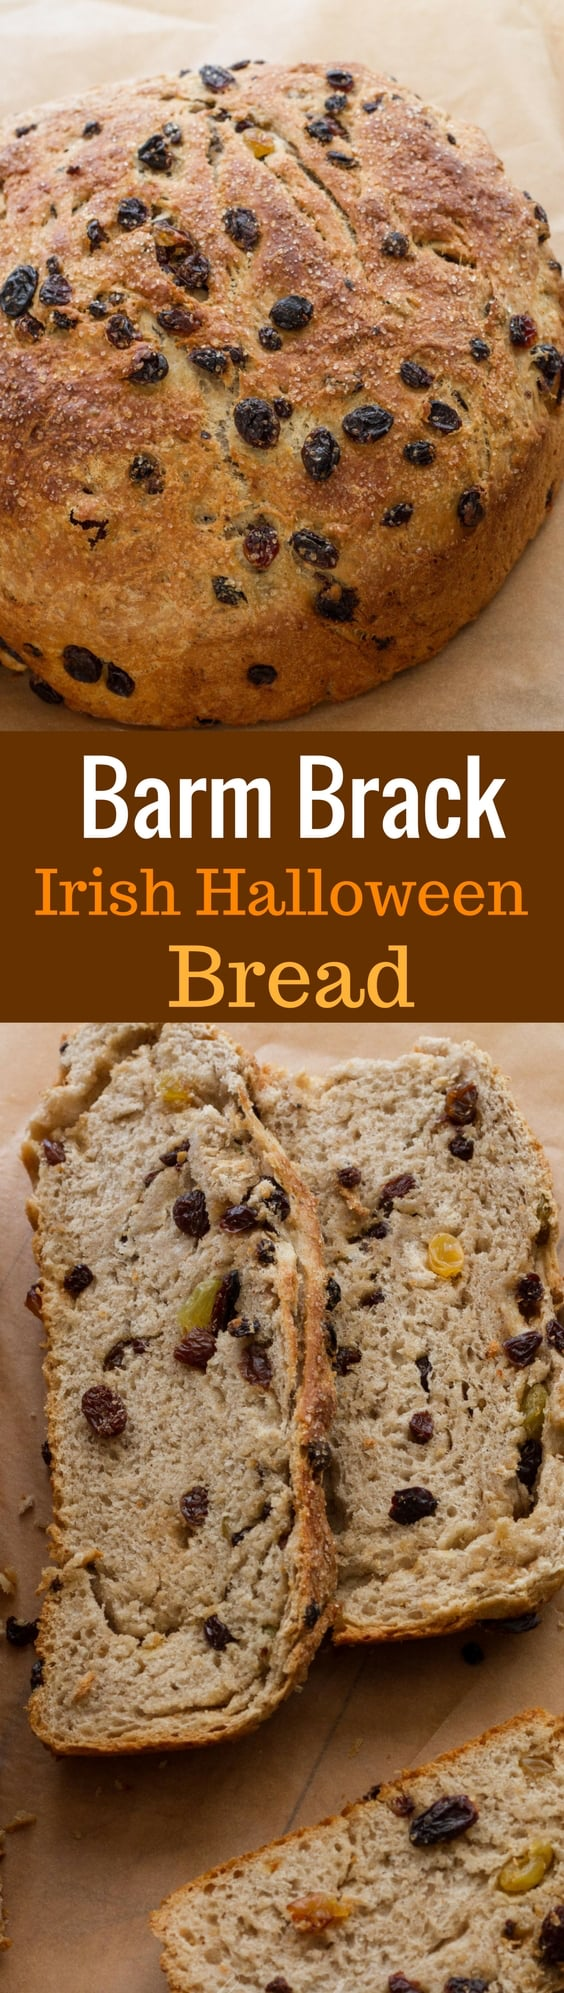 Barm Brack - Irish Halloween Bread - a little sweeter than sandwich bread, but not as rich as cake | www.savingdessert.com